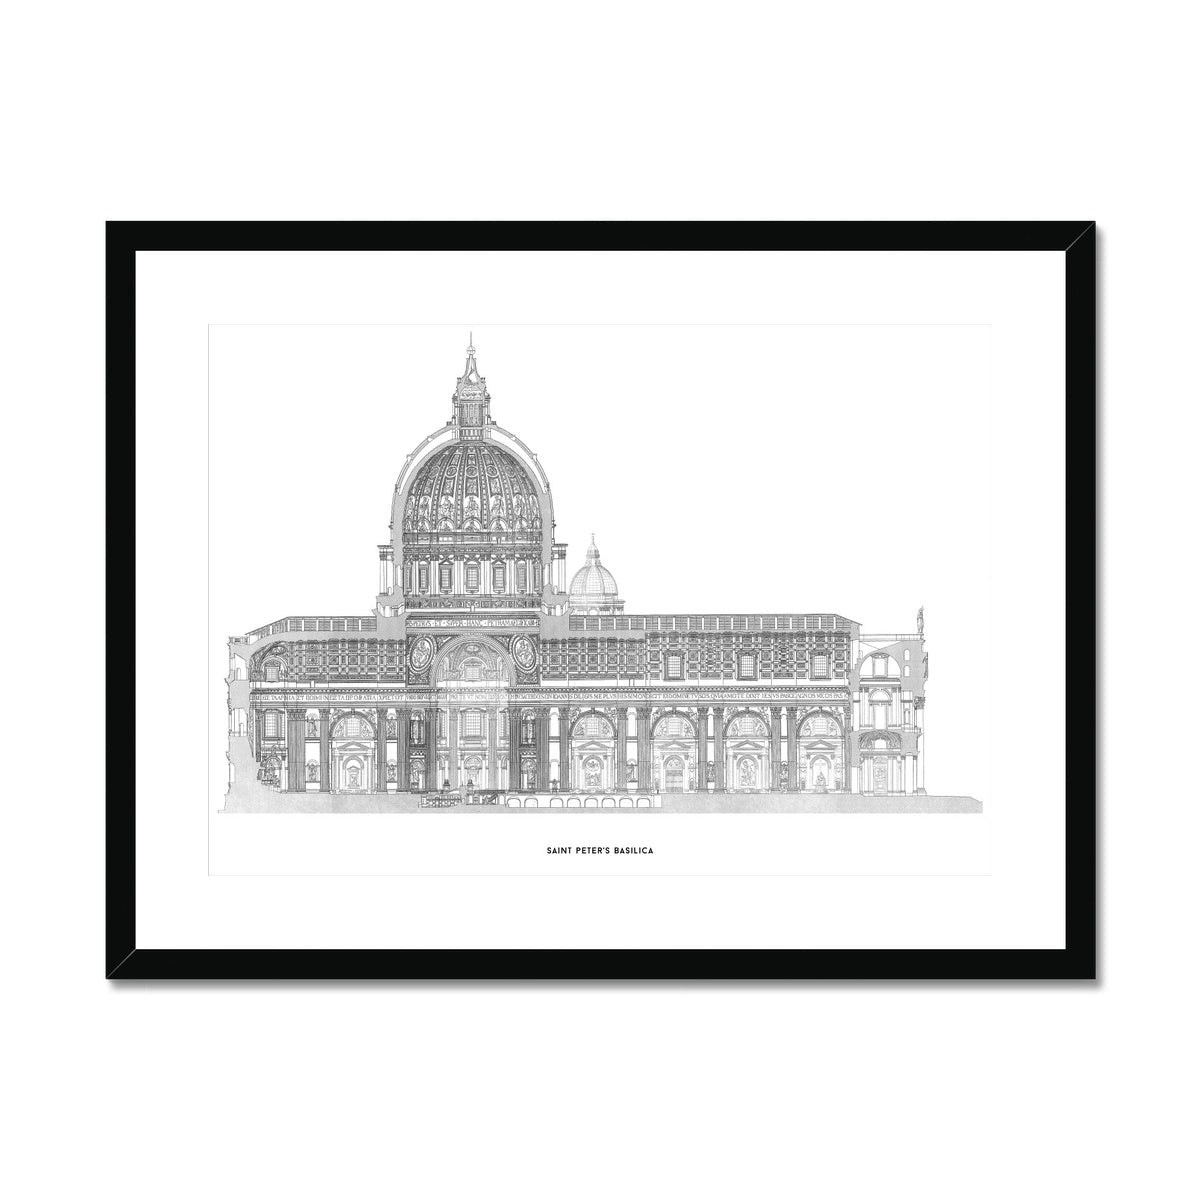 Saint Peter's Basilica - Side Elevation Cross Section - White -  Framed & Mounted Print